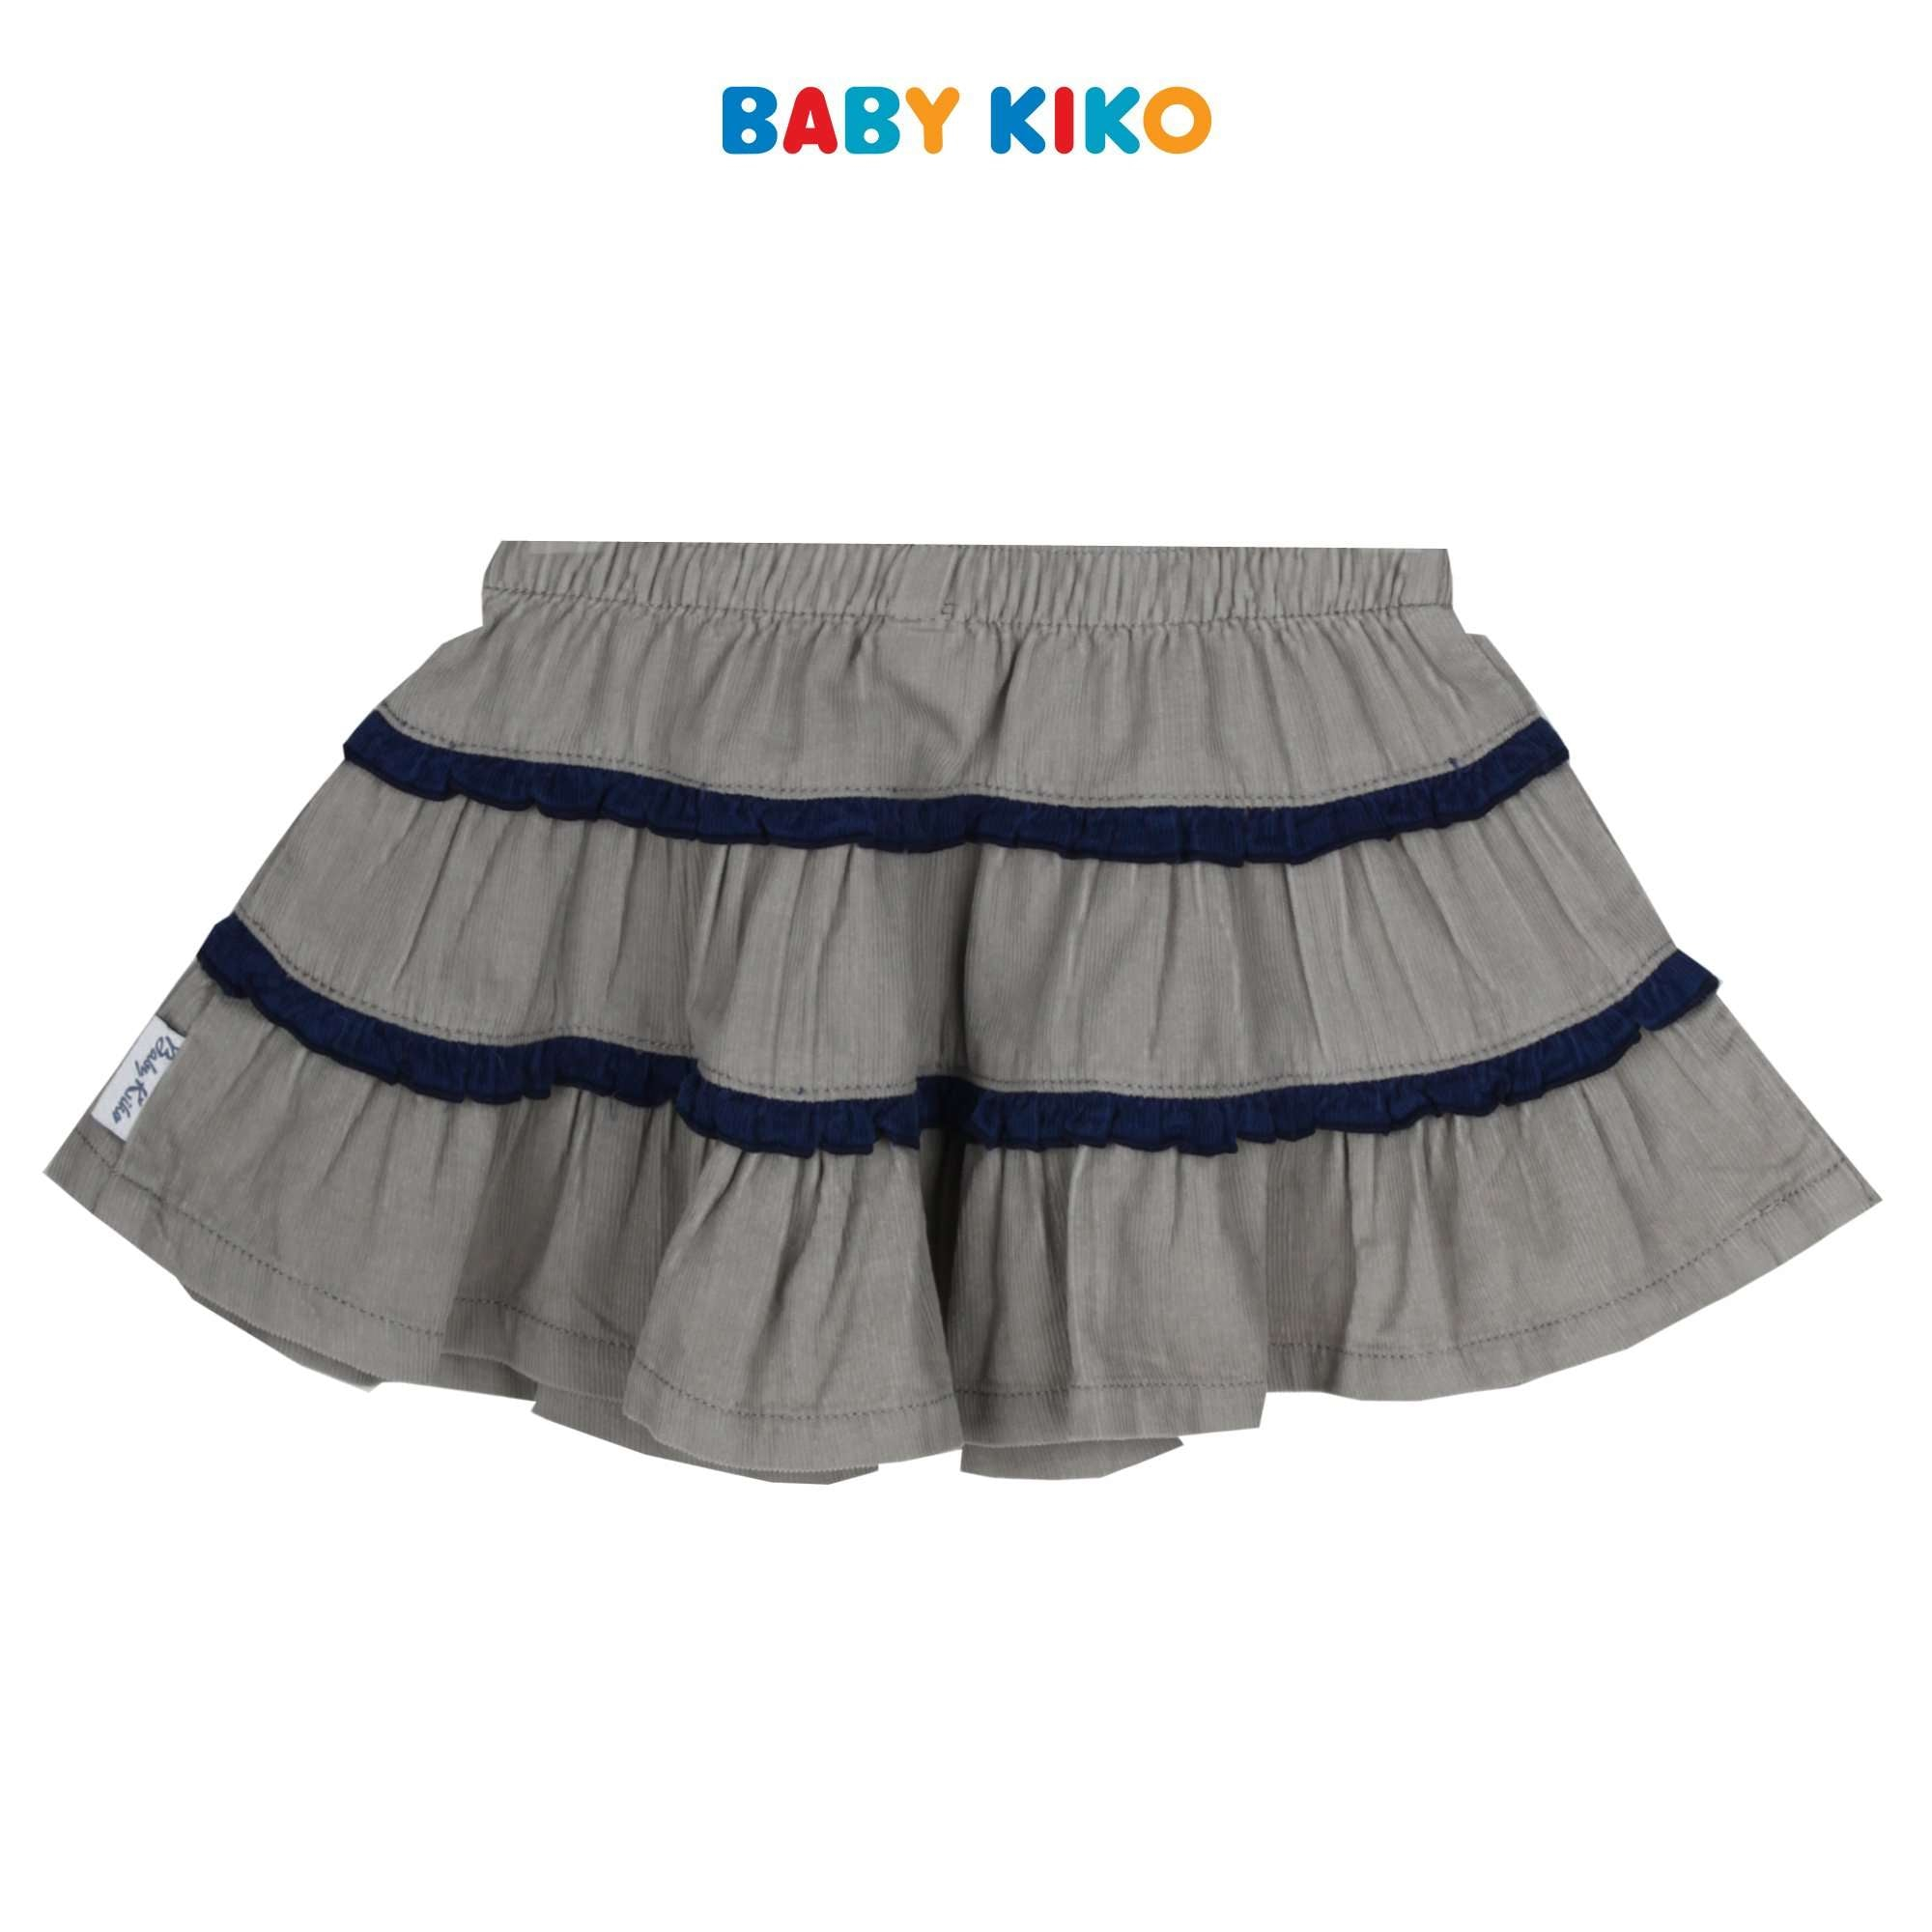 Baby KIKO Toddler Girl Skirt - Lavender Lustre 335096-261 : Buy Baby KIKO online at CMG.MY